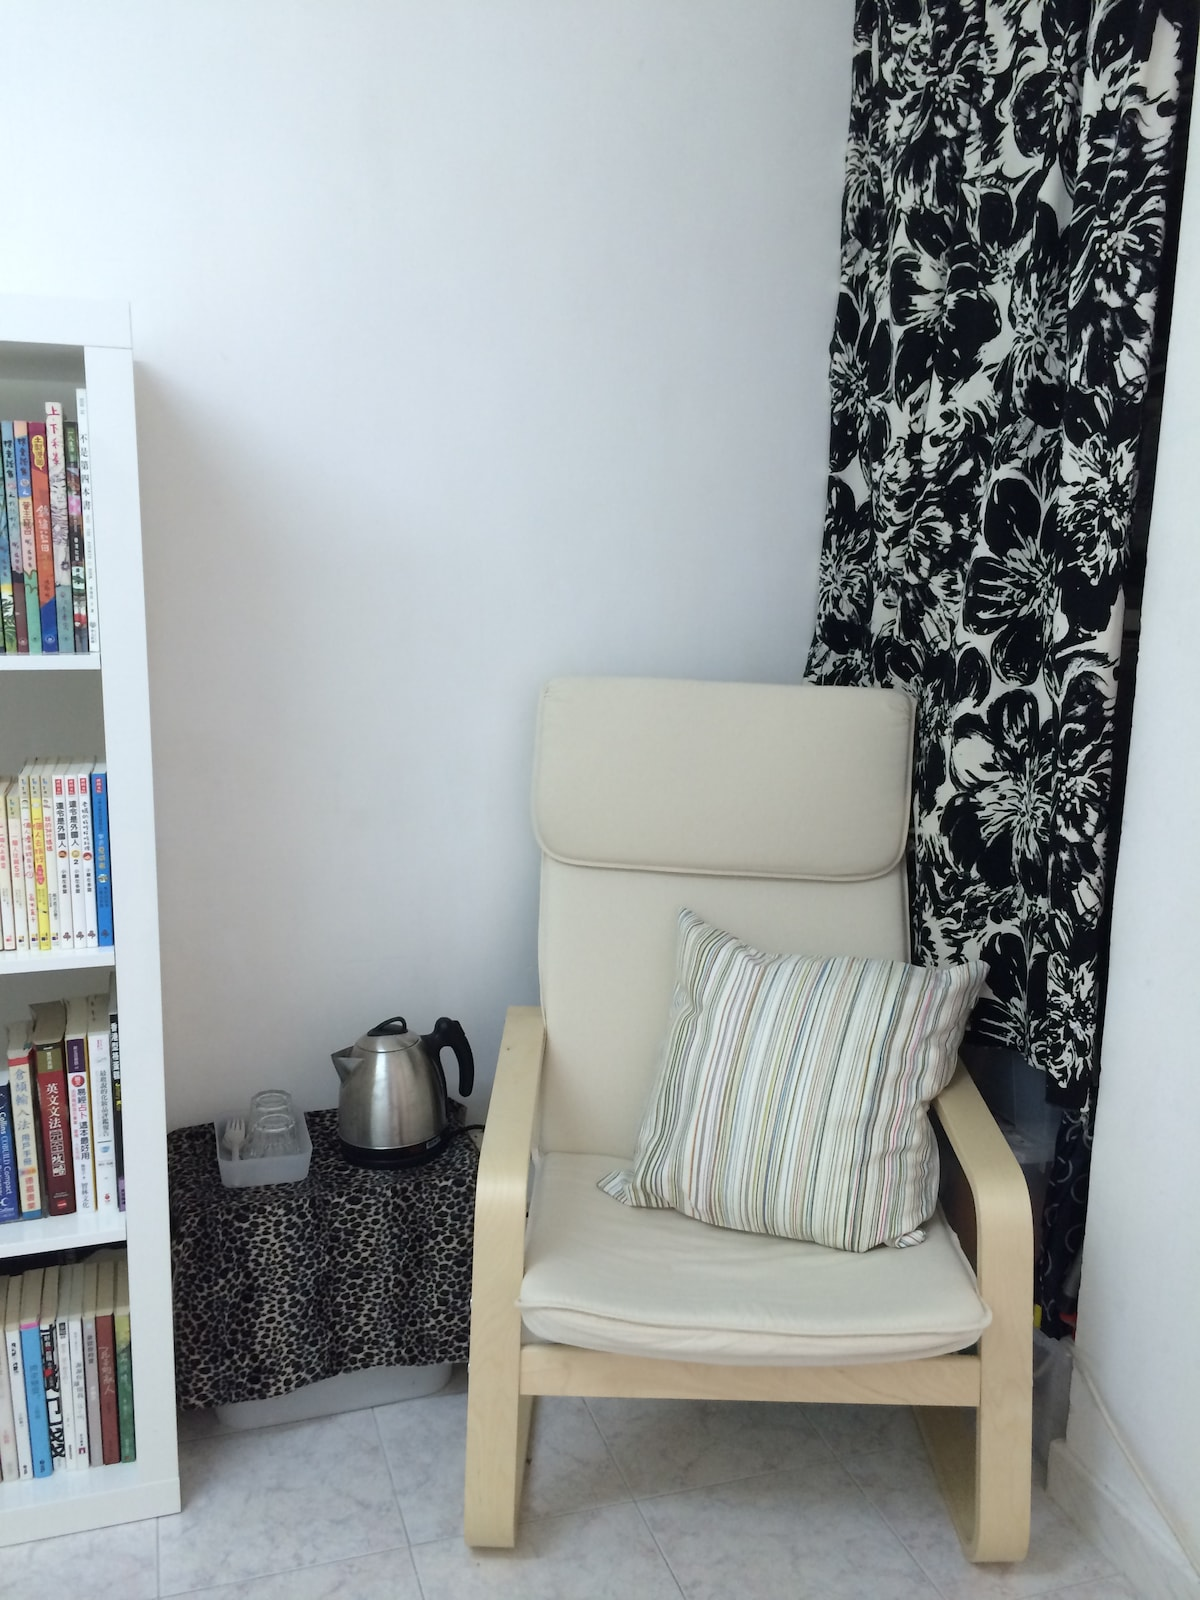 Chair and kettle